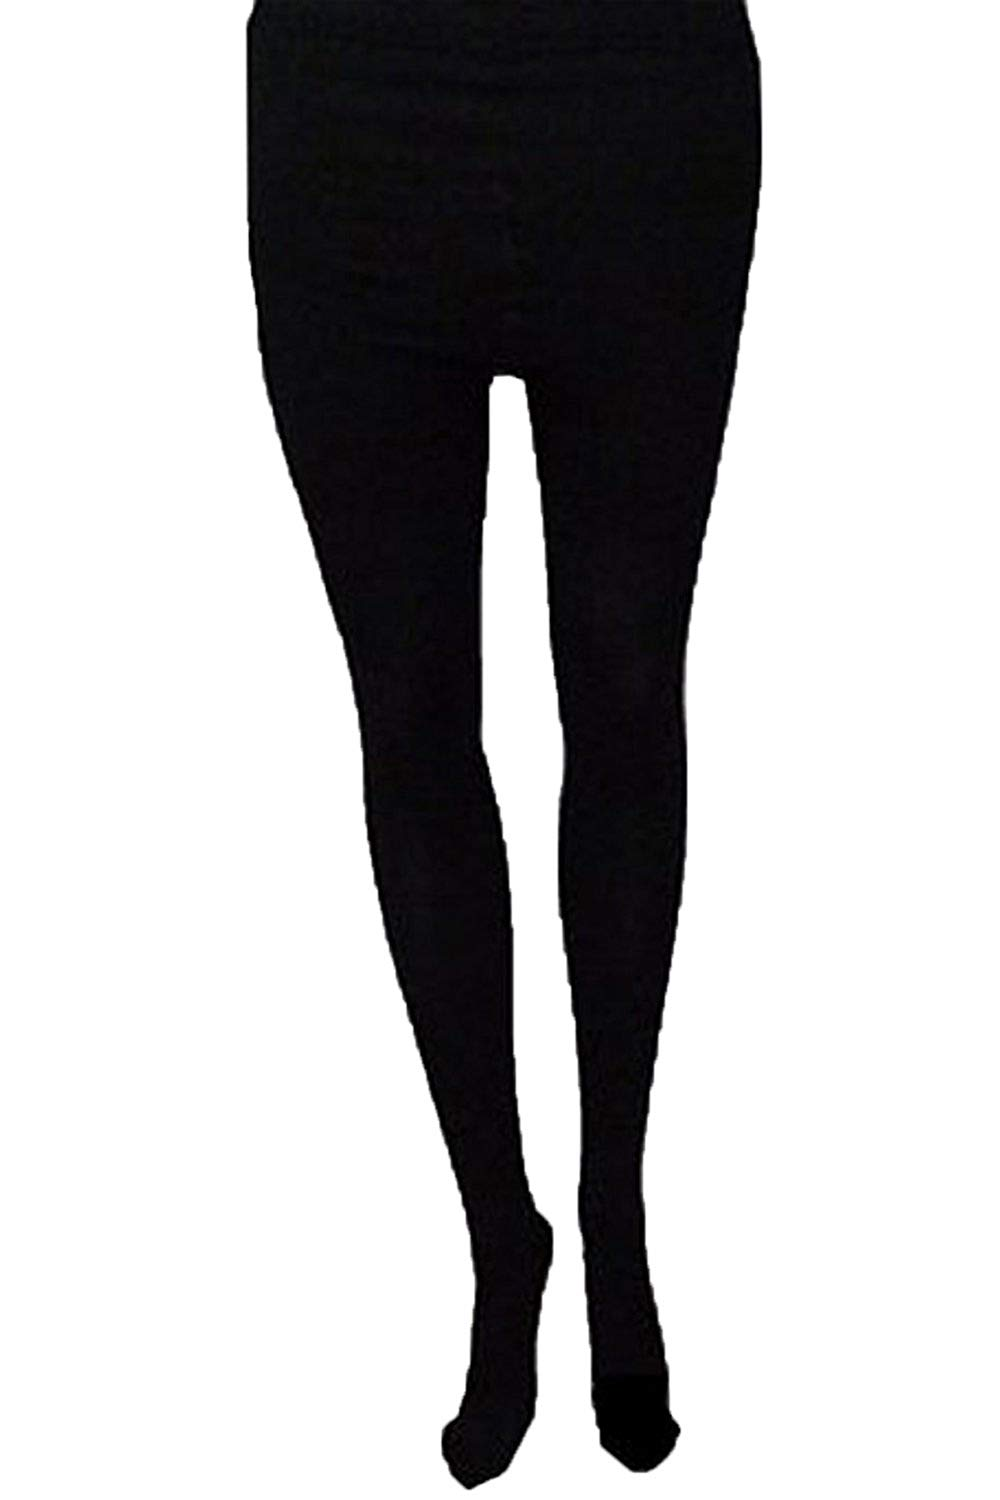 2cddca11af798 Get Quotations · Womens Opaque Black Tights By Silky Thermal Fleece 140  Denier